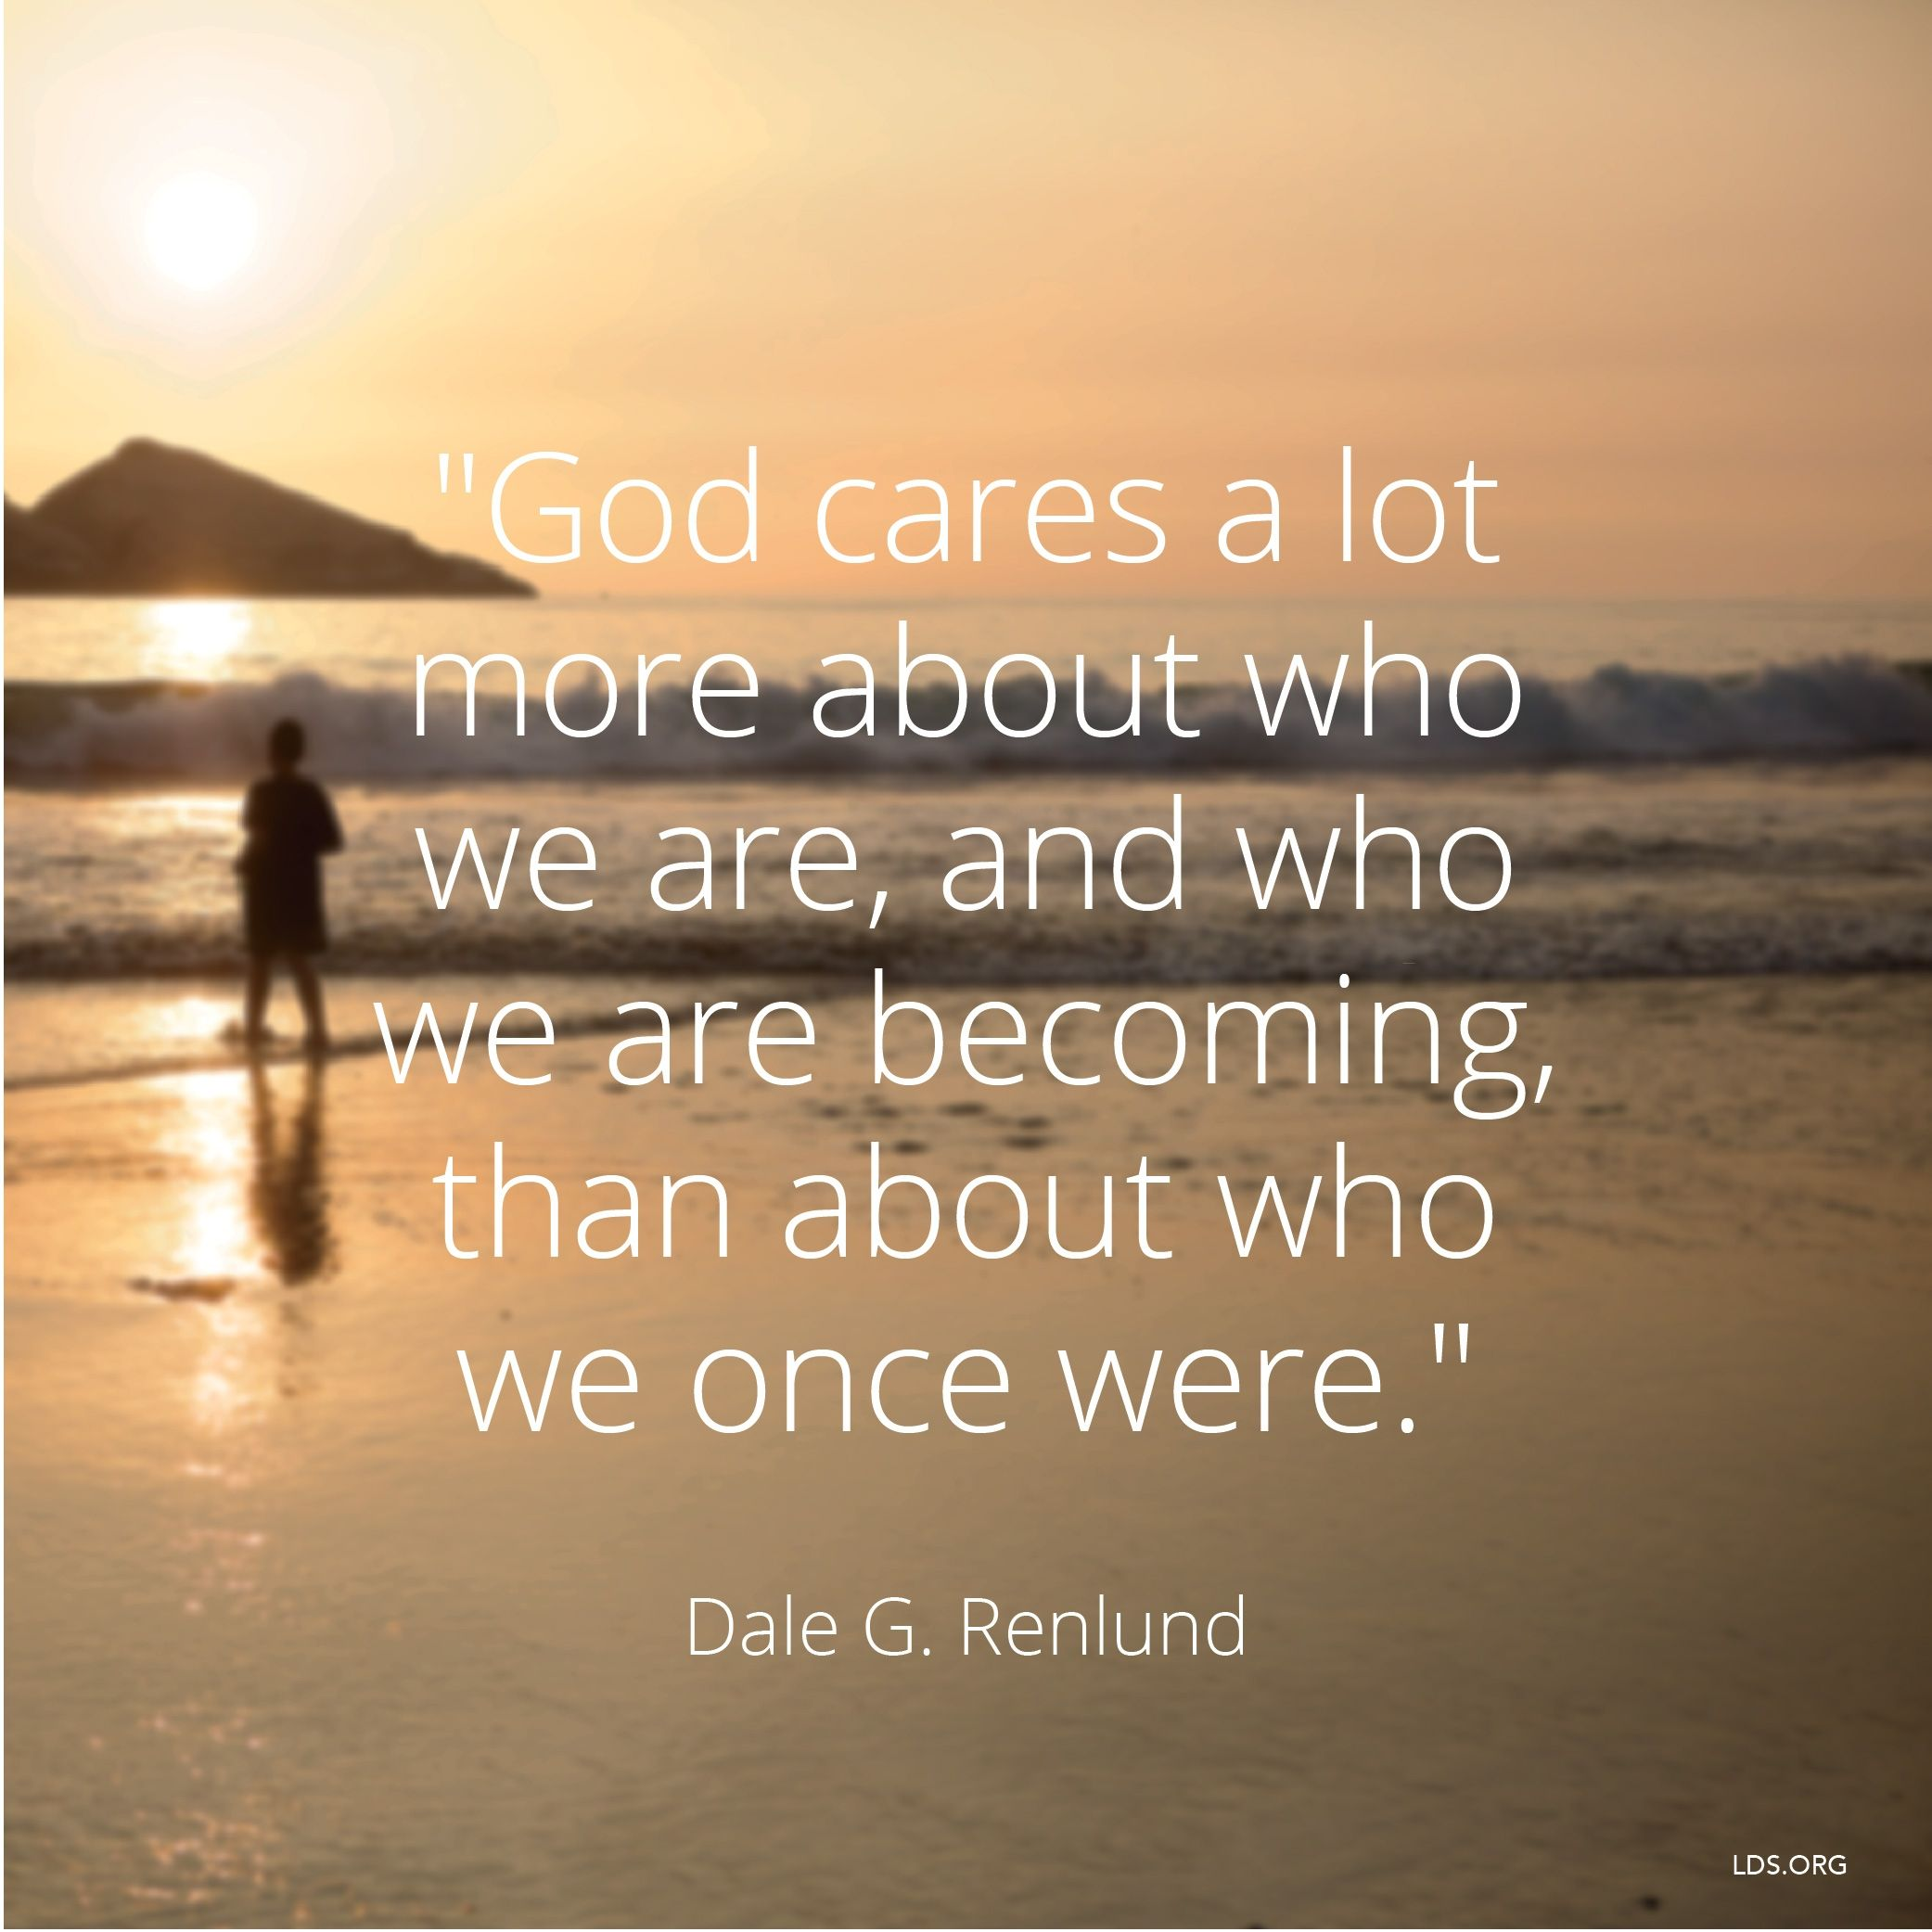 """""""God cares a lot more about who we are, and who we are becoming, than about who we once were.""""—Elder Dale G. Renlund, """"Latter-day Saints Keep on Trying."""""""